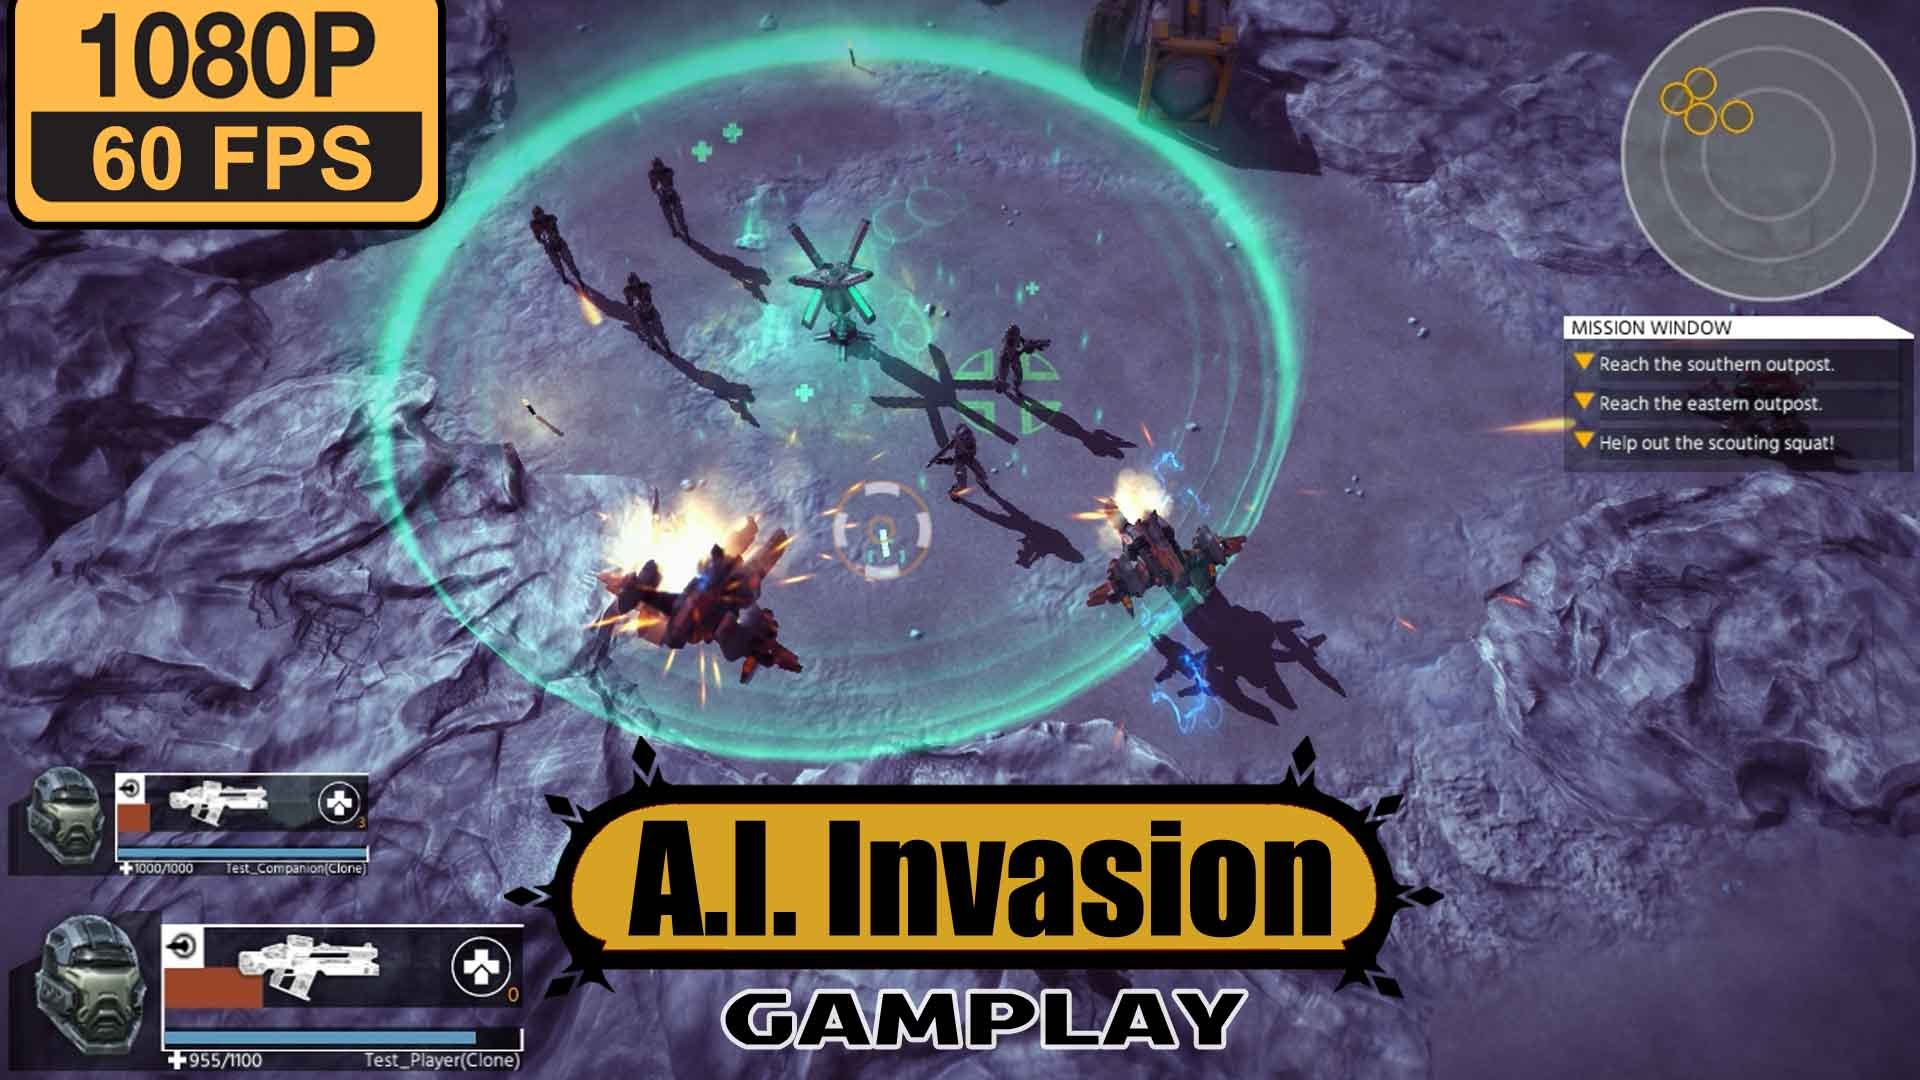 A.I. Invasion High Quality Background on Wallpapers Vista